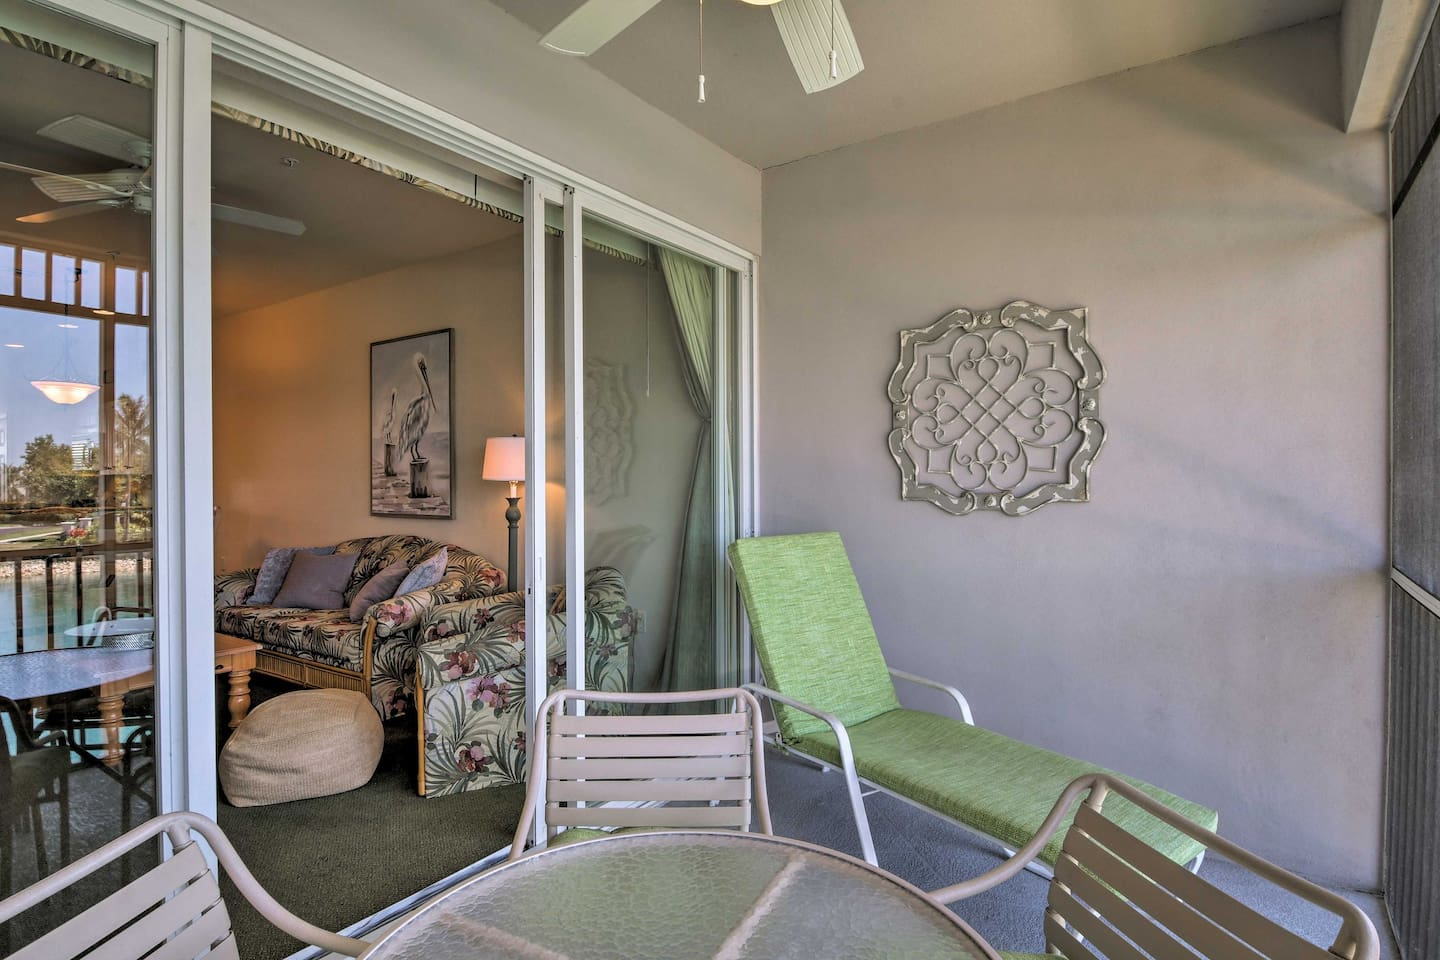 The lanai offers a lounge chair and outdoor dining table.